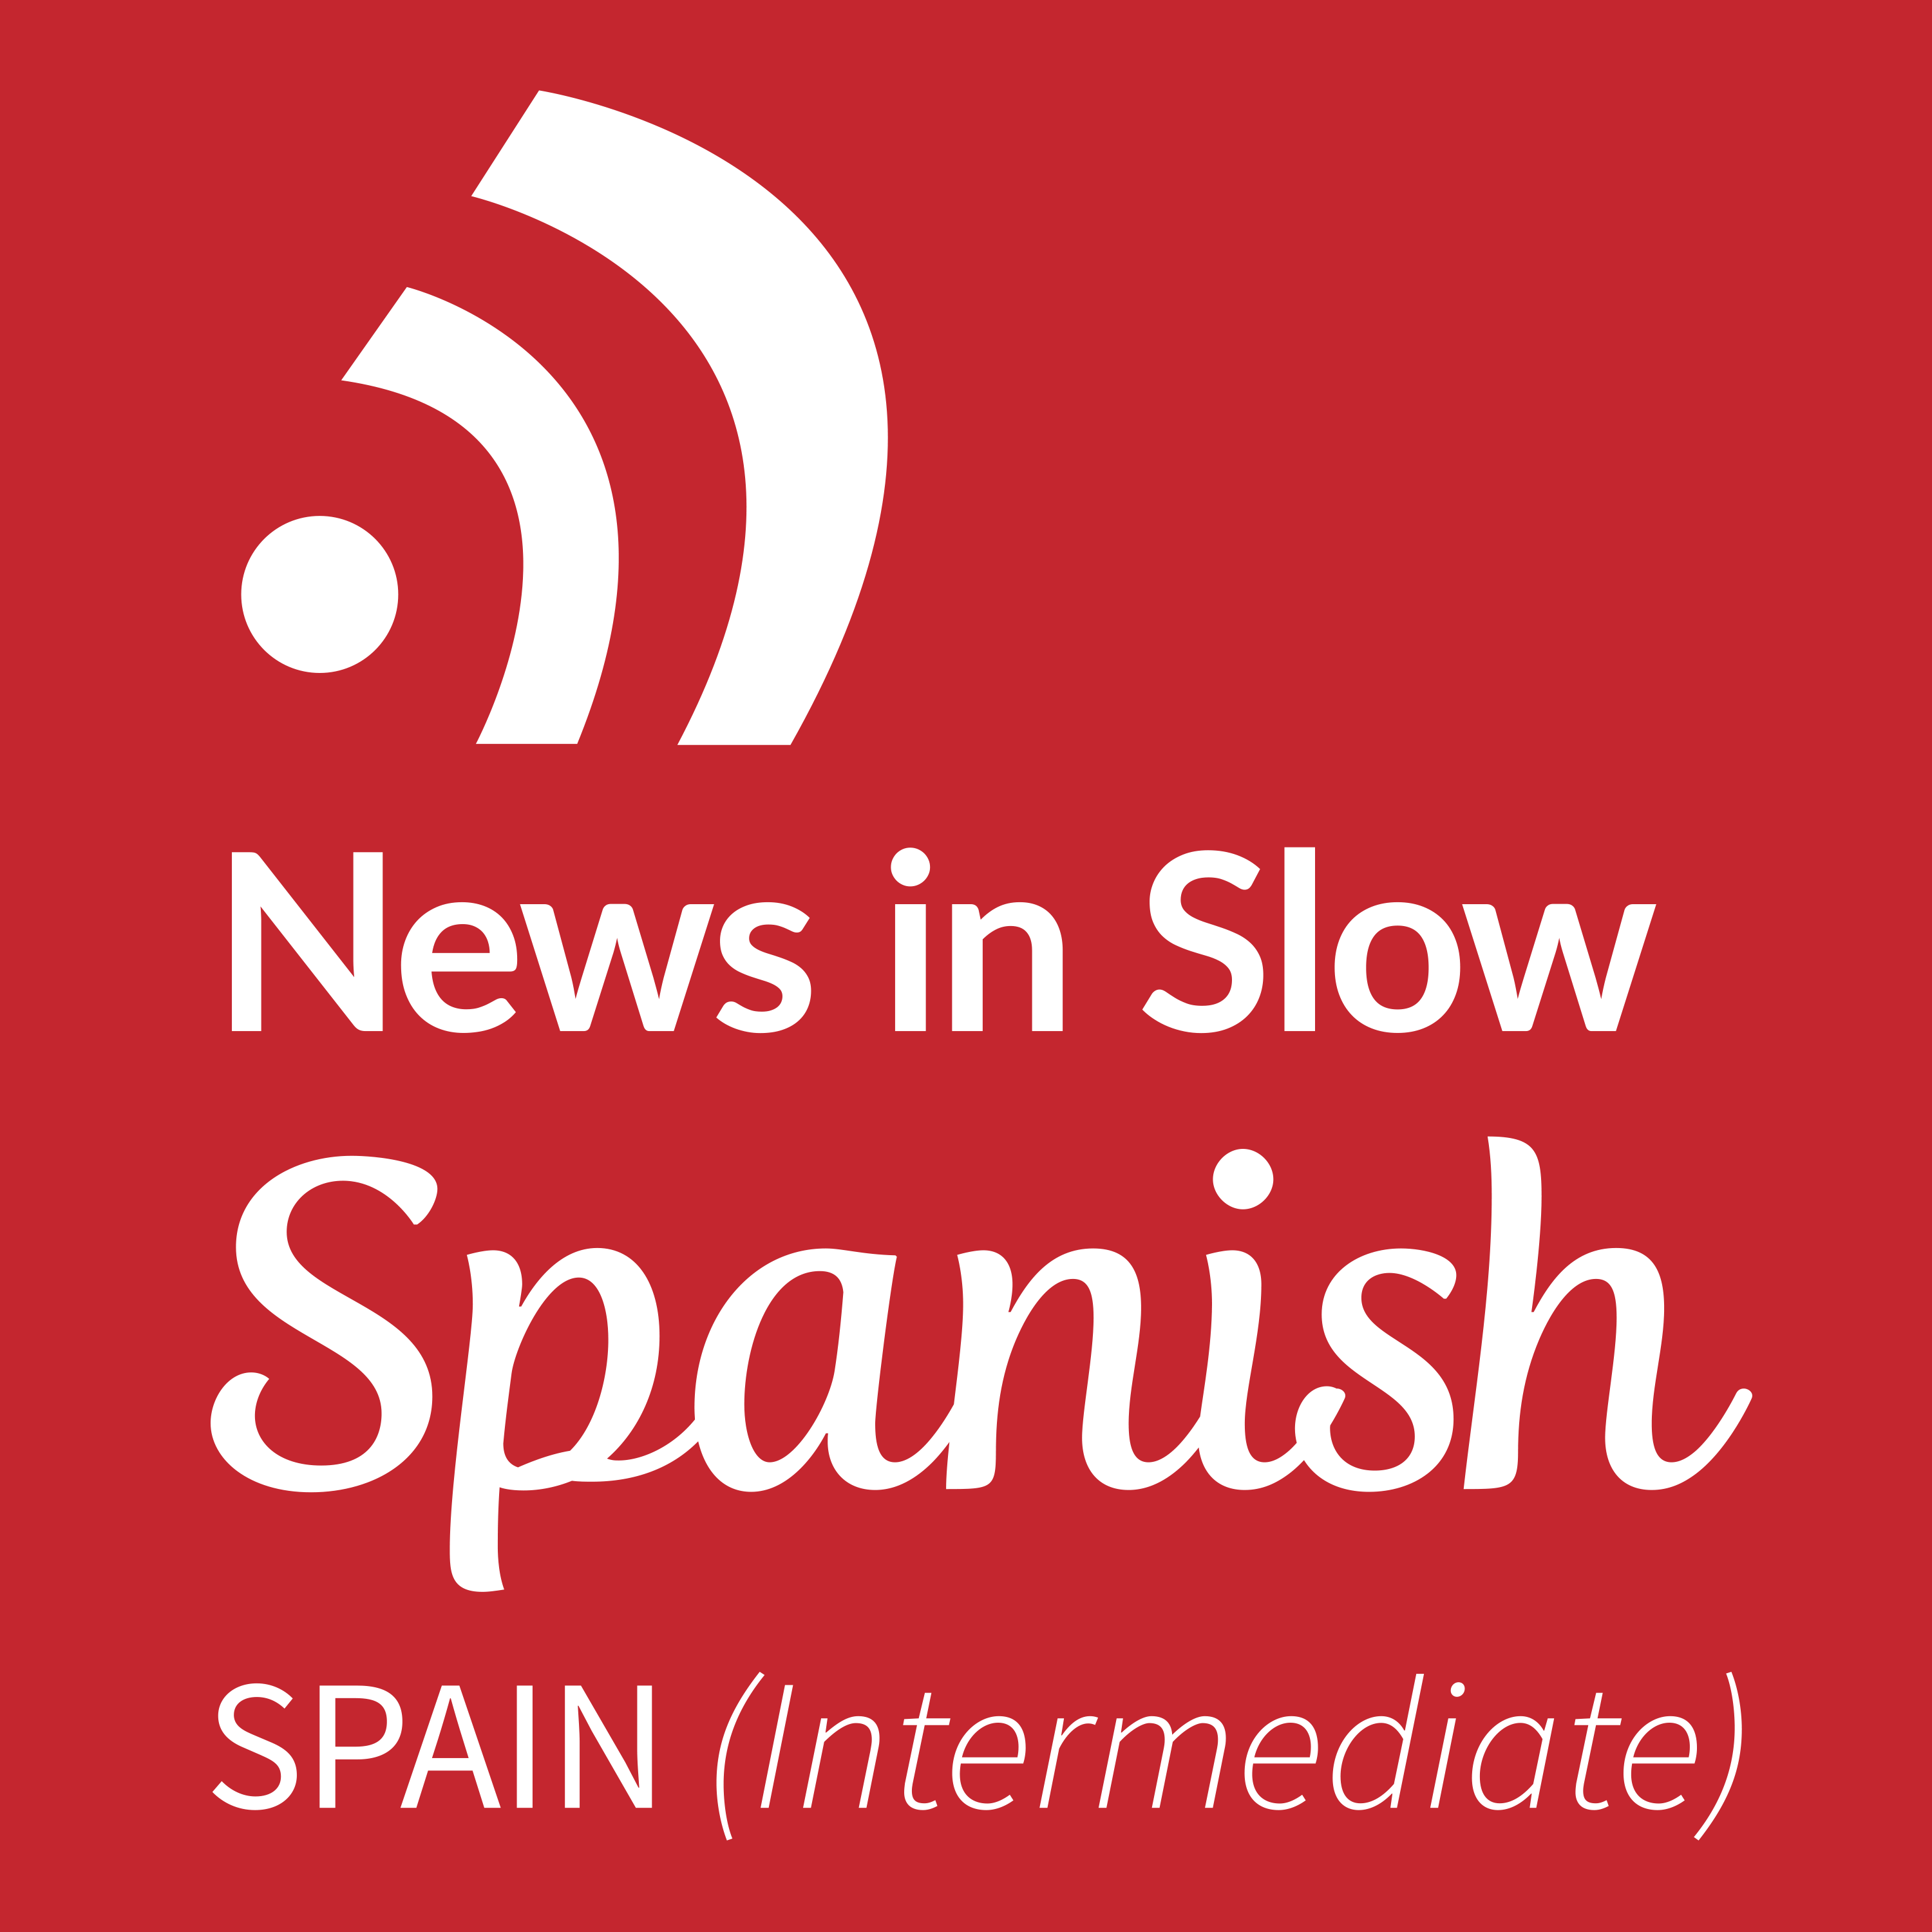 News in Slow Spanish - #410 - Weekly language learning show with discussion of current events